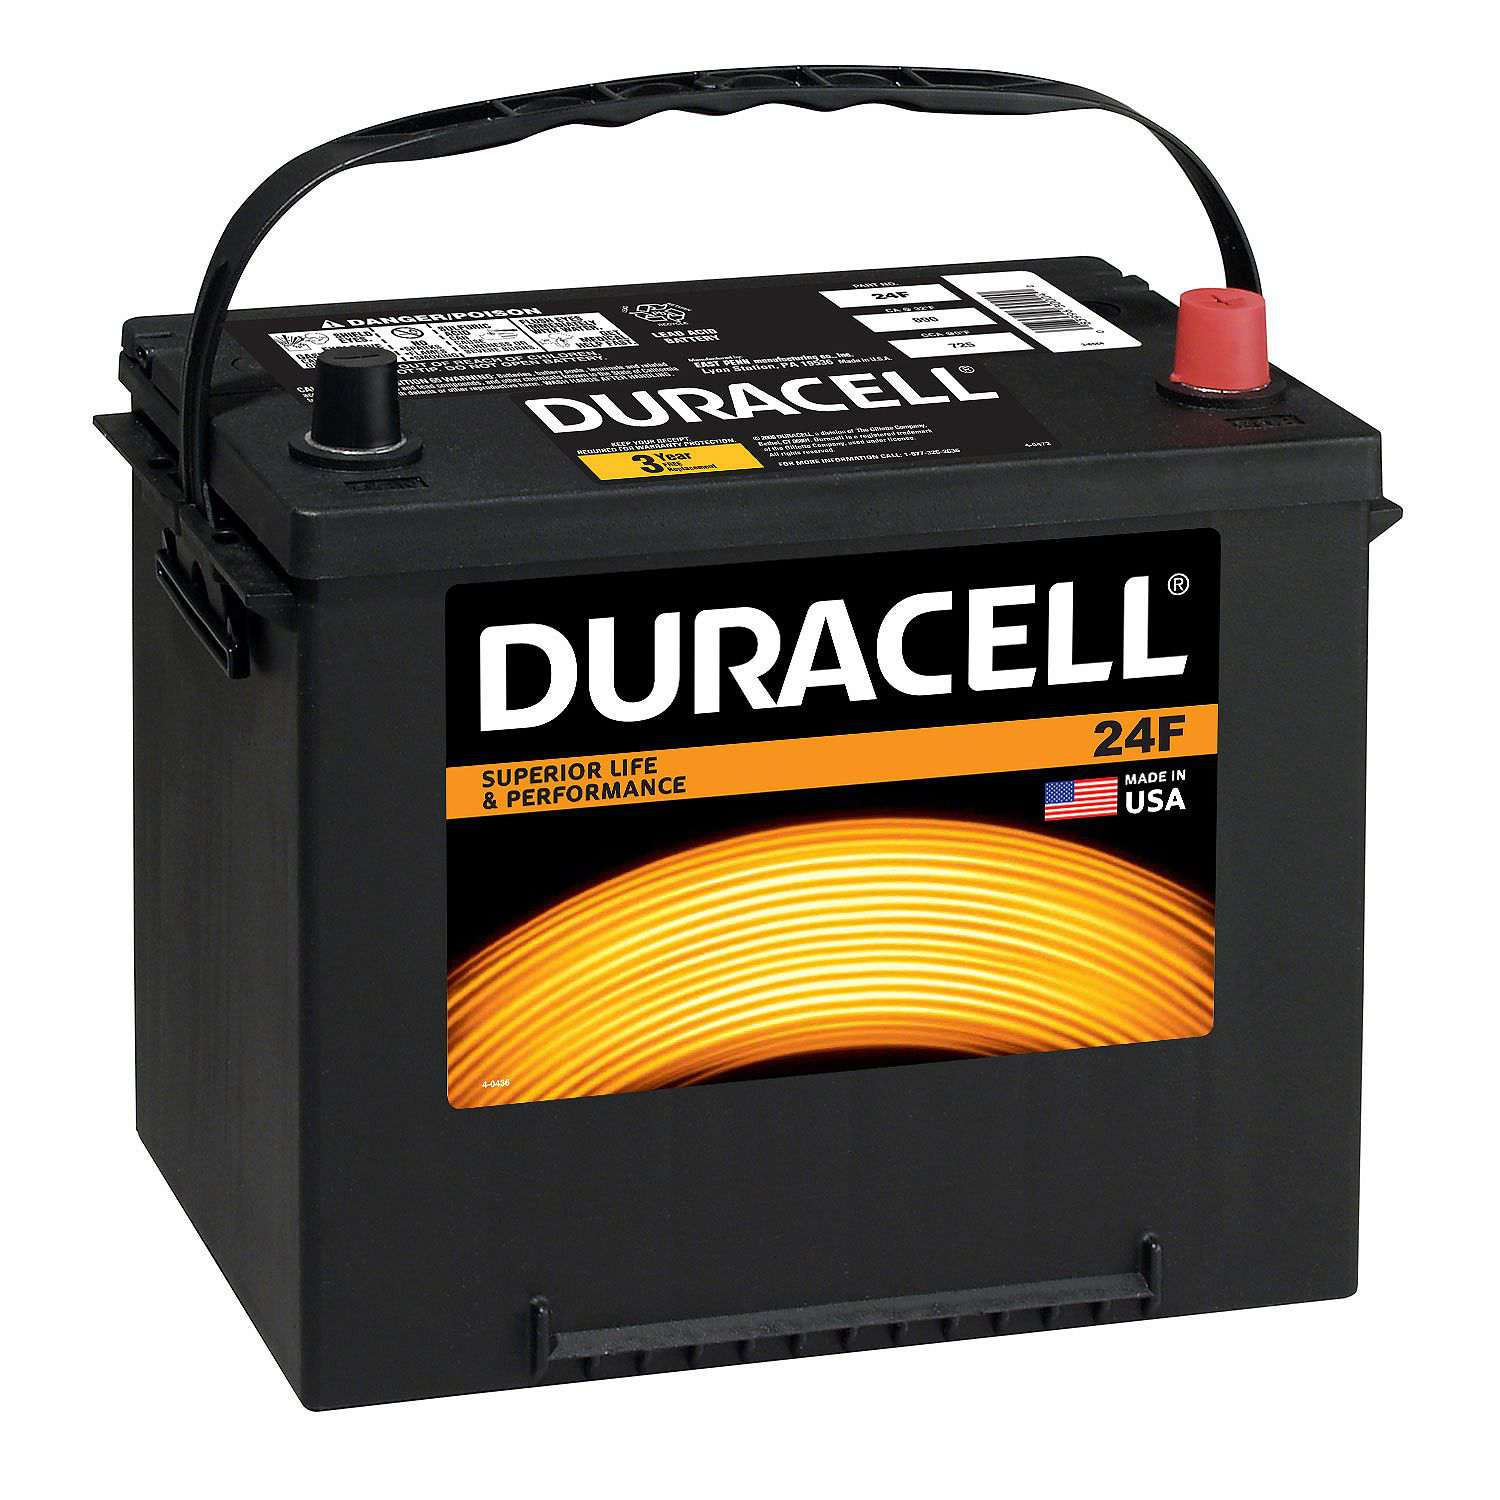 7 Best Places For A Car Battery In 2019